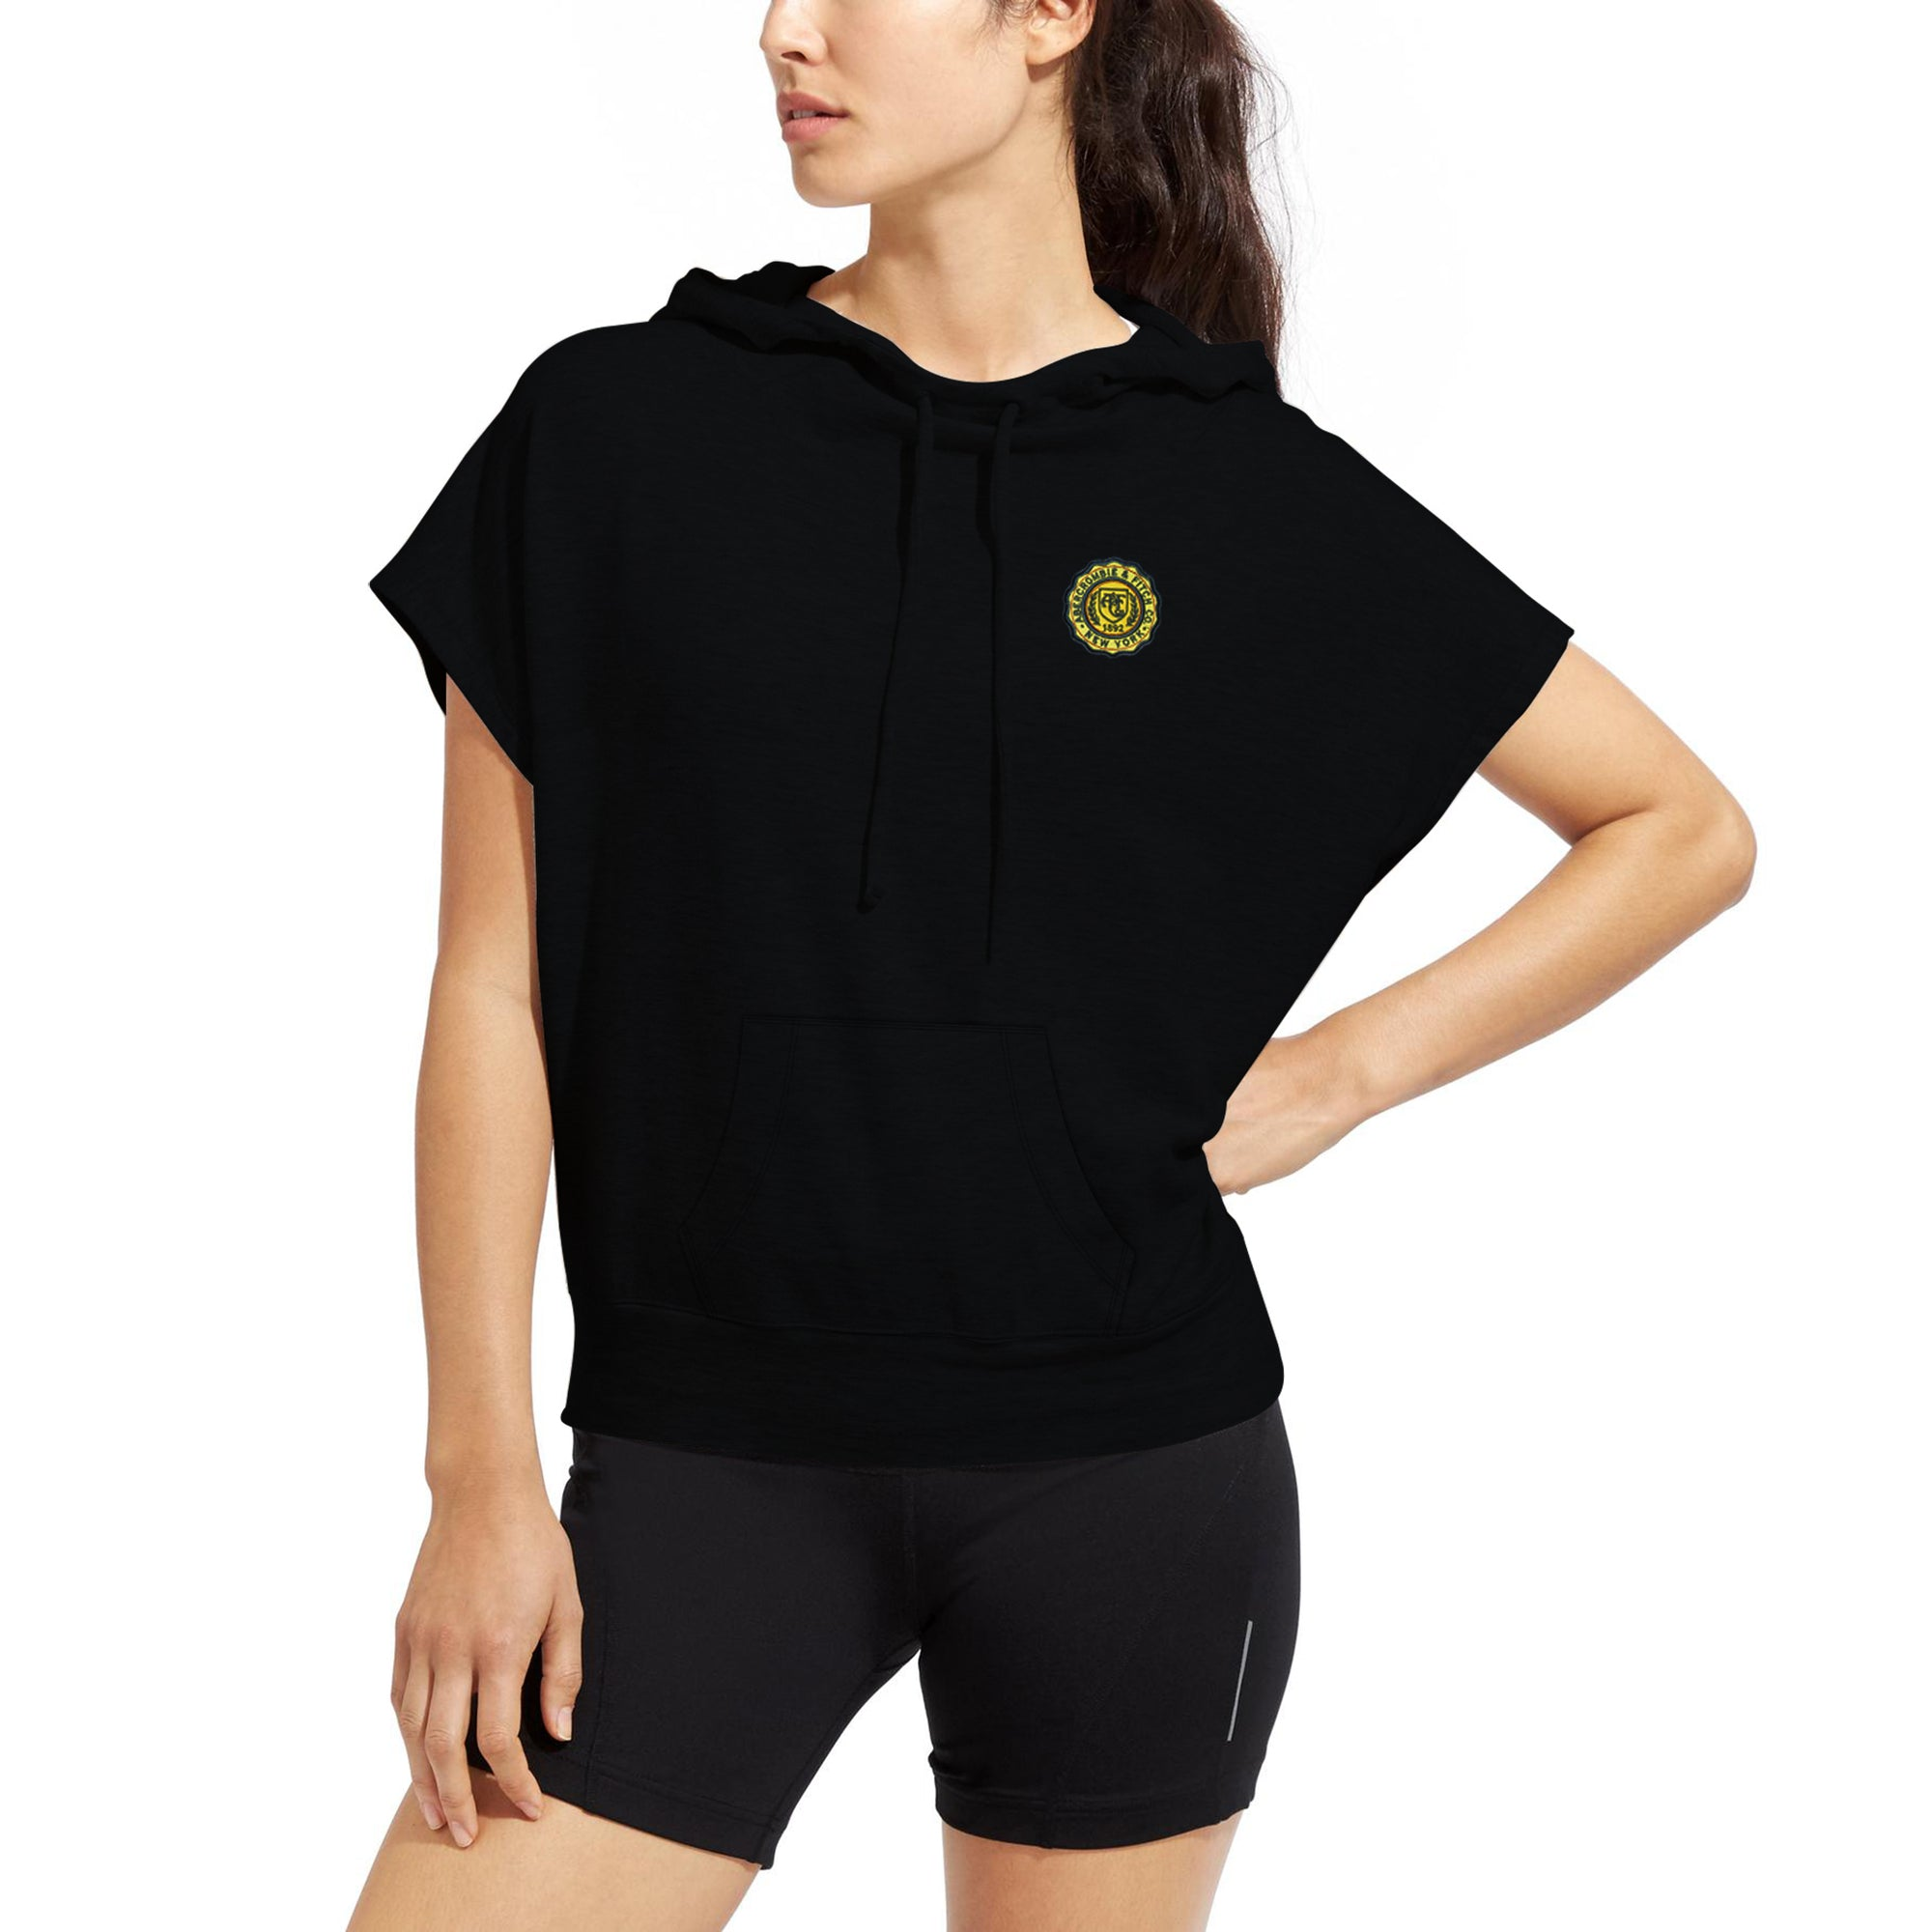 Next Fleece Short Sleeve Top For Ladies-Black-BE7036